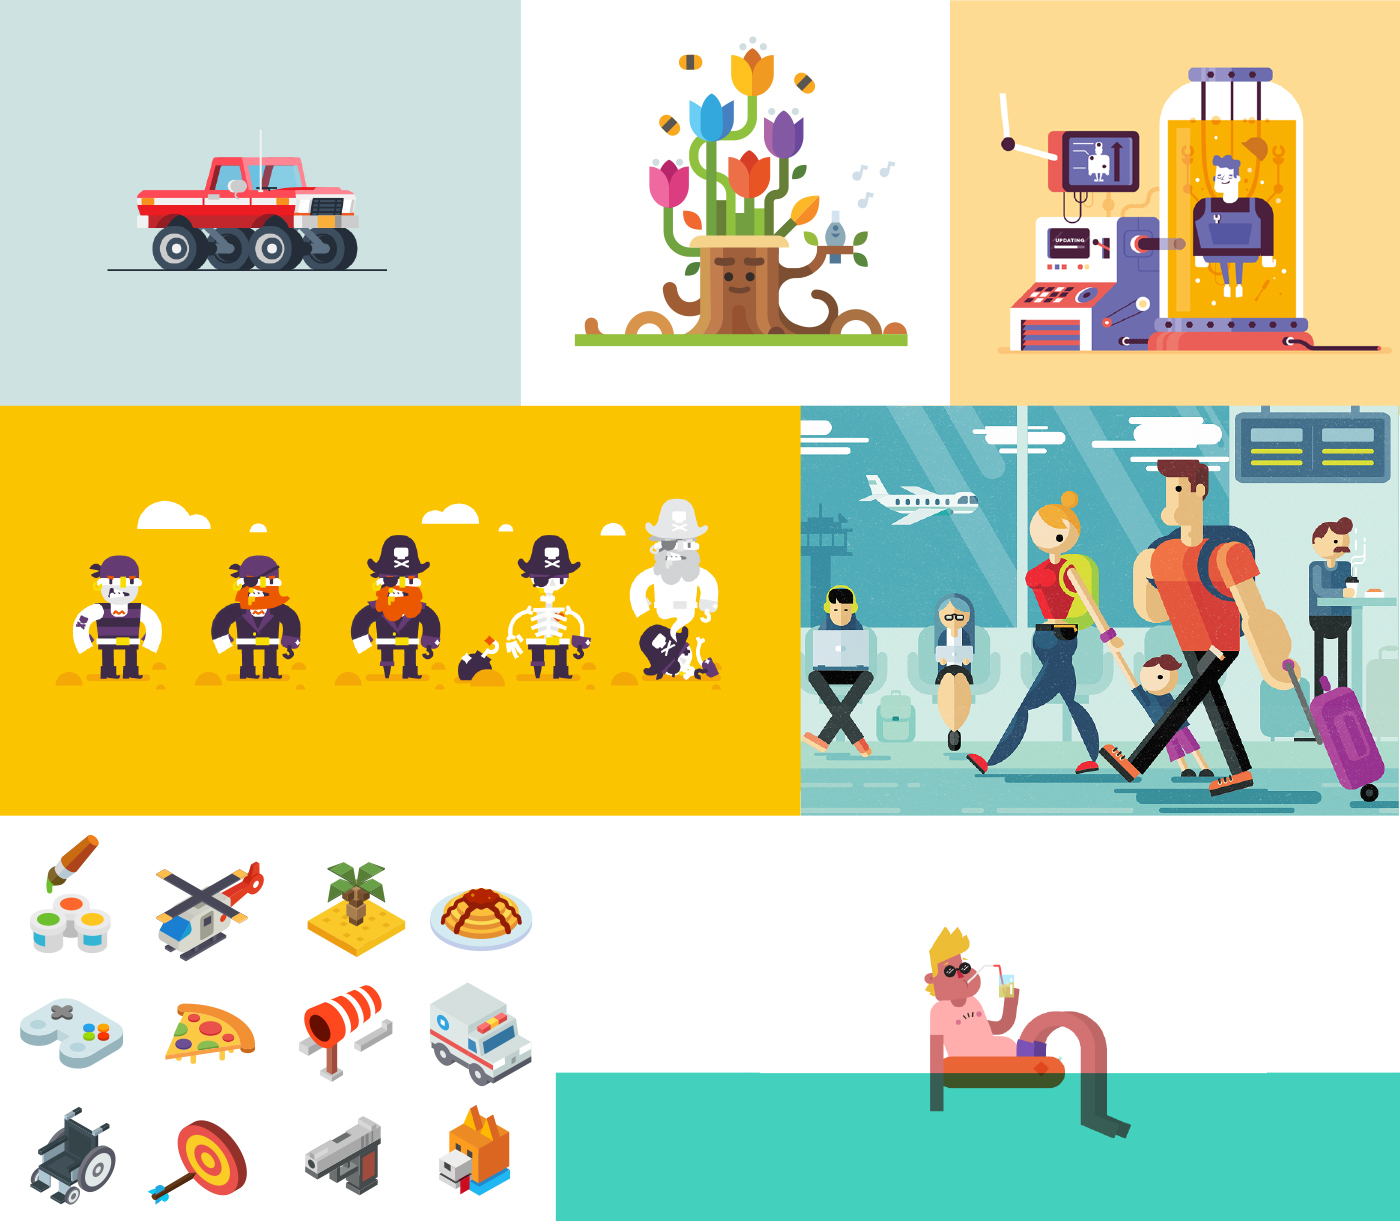 gif 2D flat Peart Icon Travel airport 3D after effects robot Truck Flowers Character sea motion design